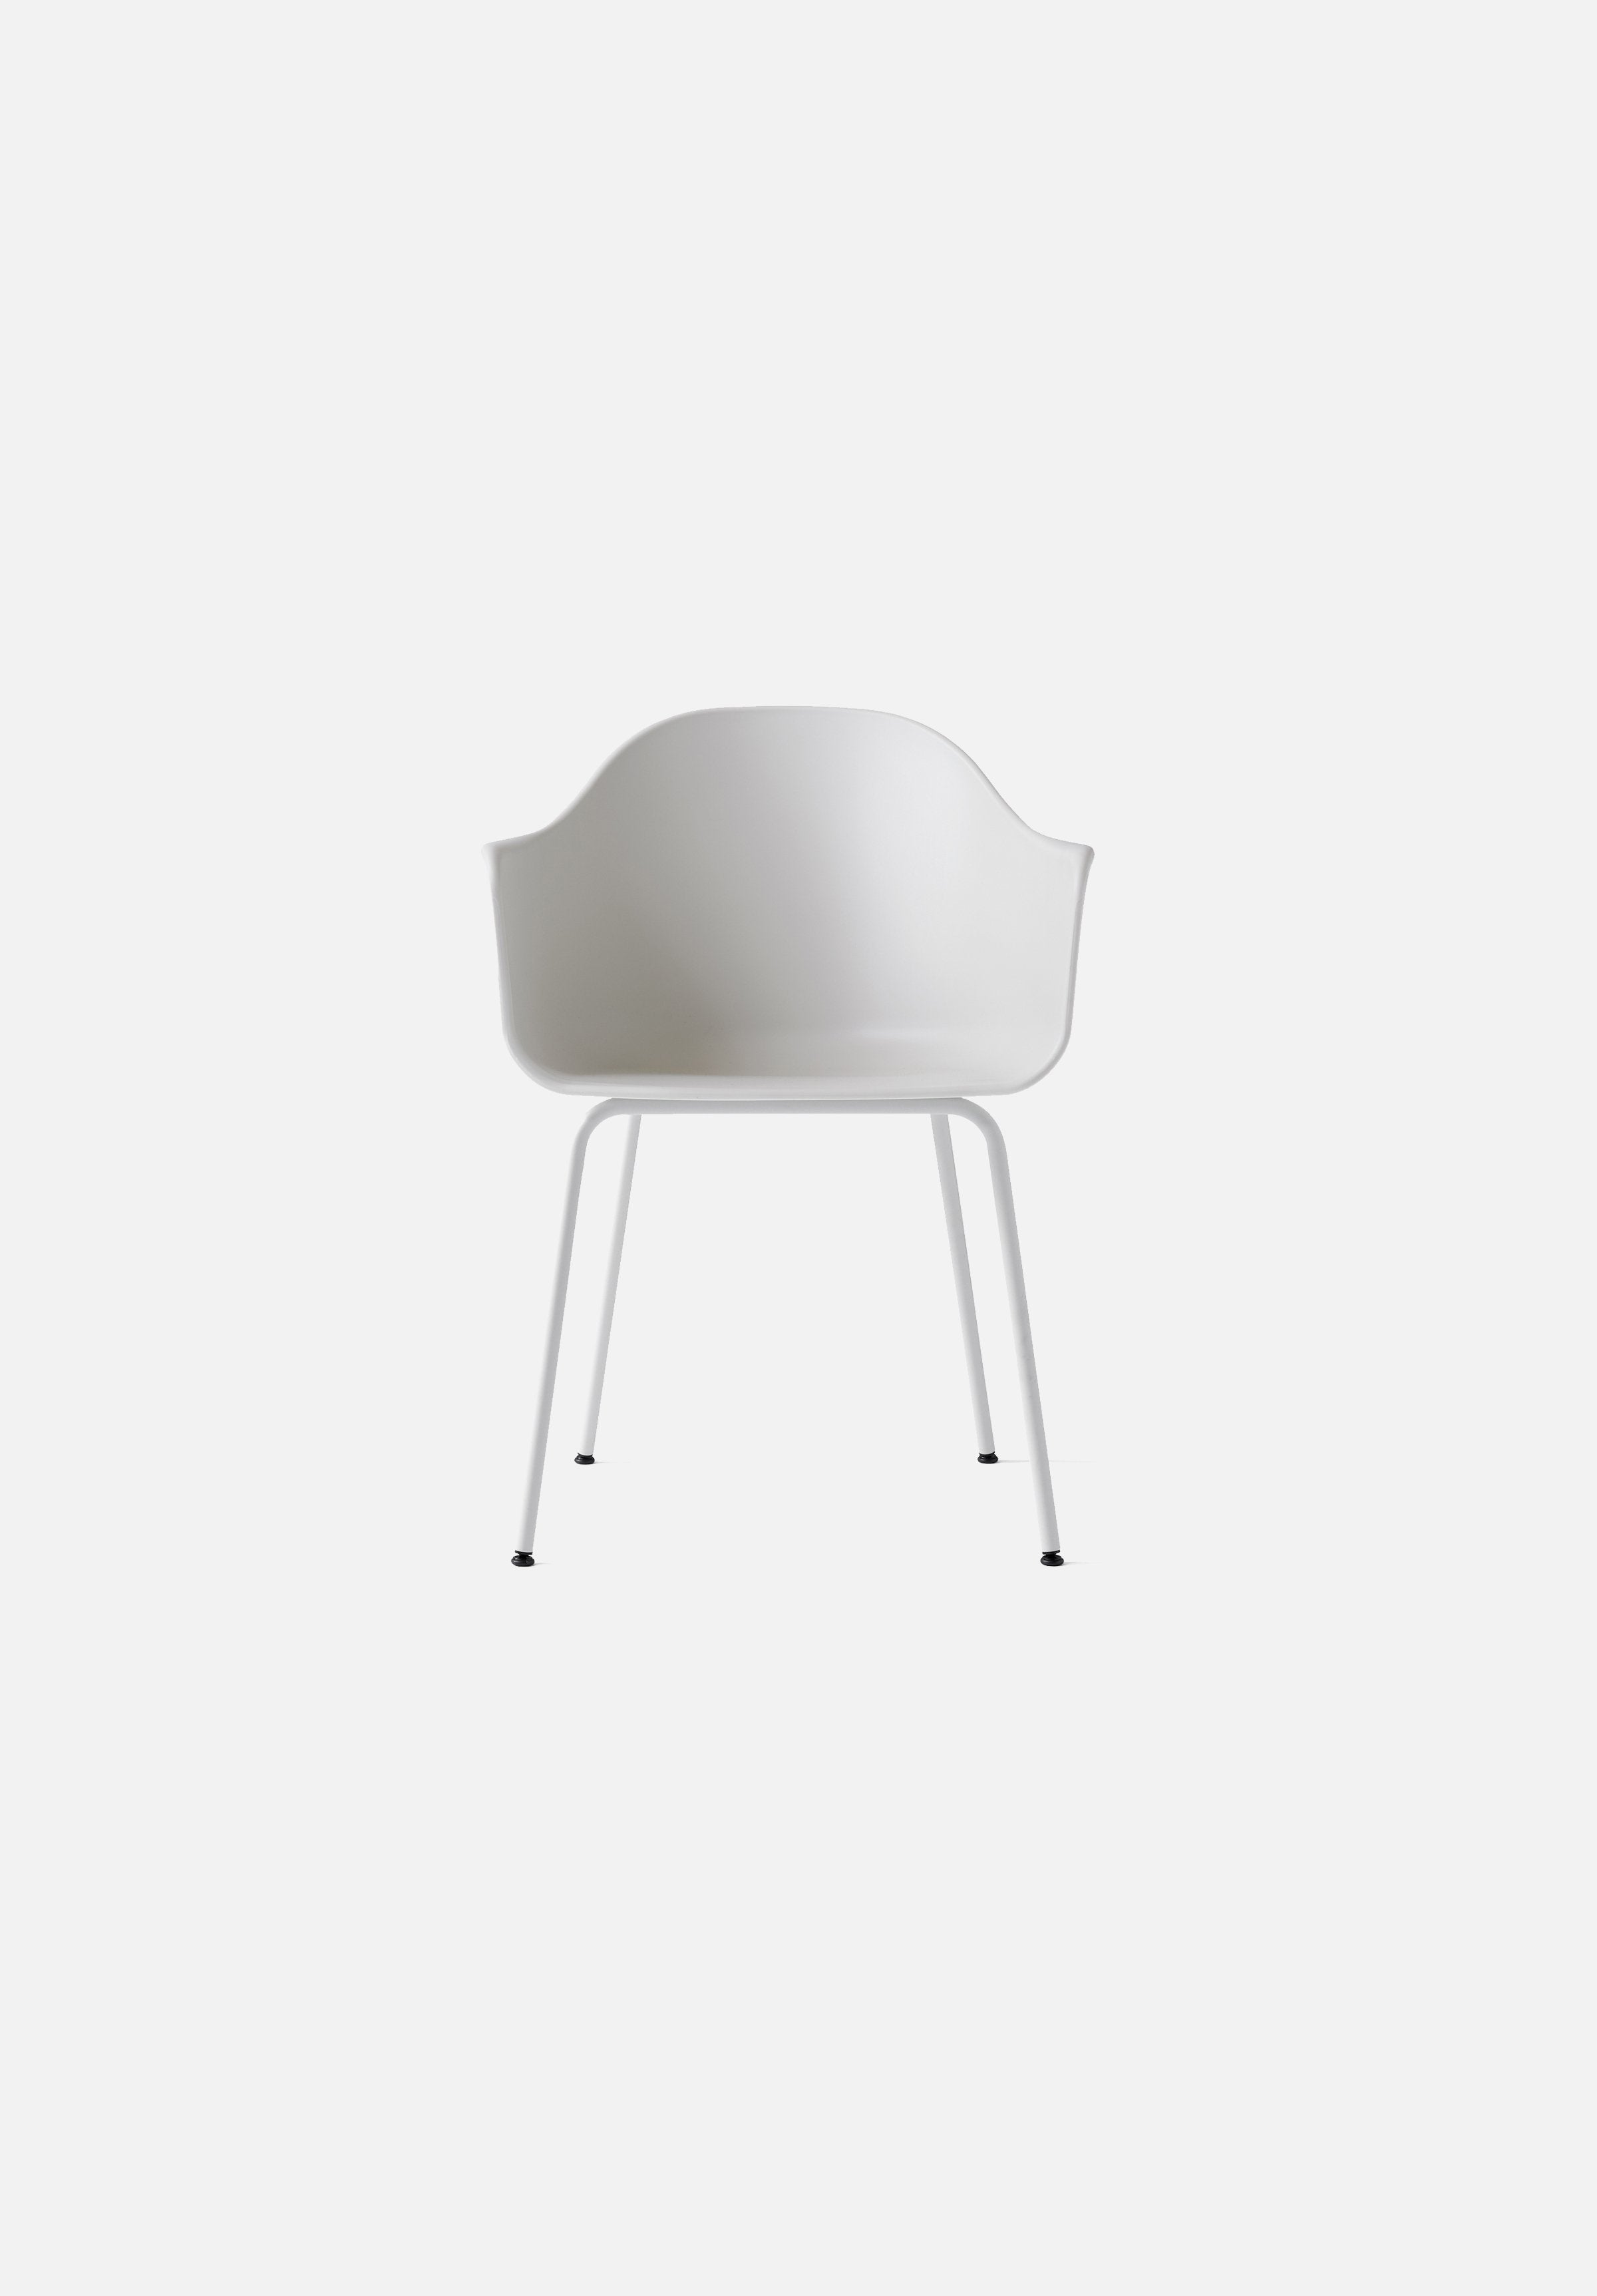 Harbour Chair - Steel Base-Norm Architects-Menu-light_grey-White Steel-danish-interior-furniture-denmark-Average-design-toronto-canada